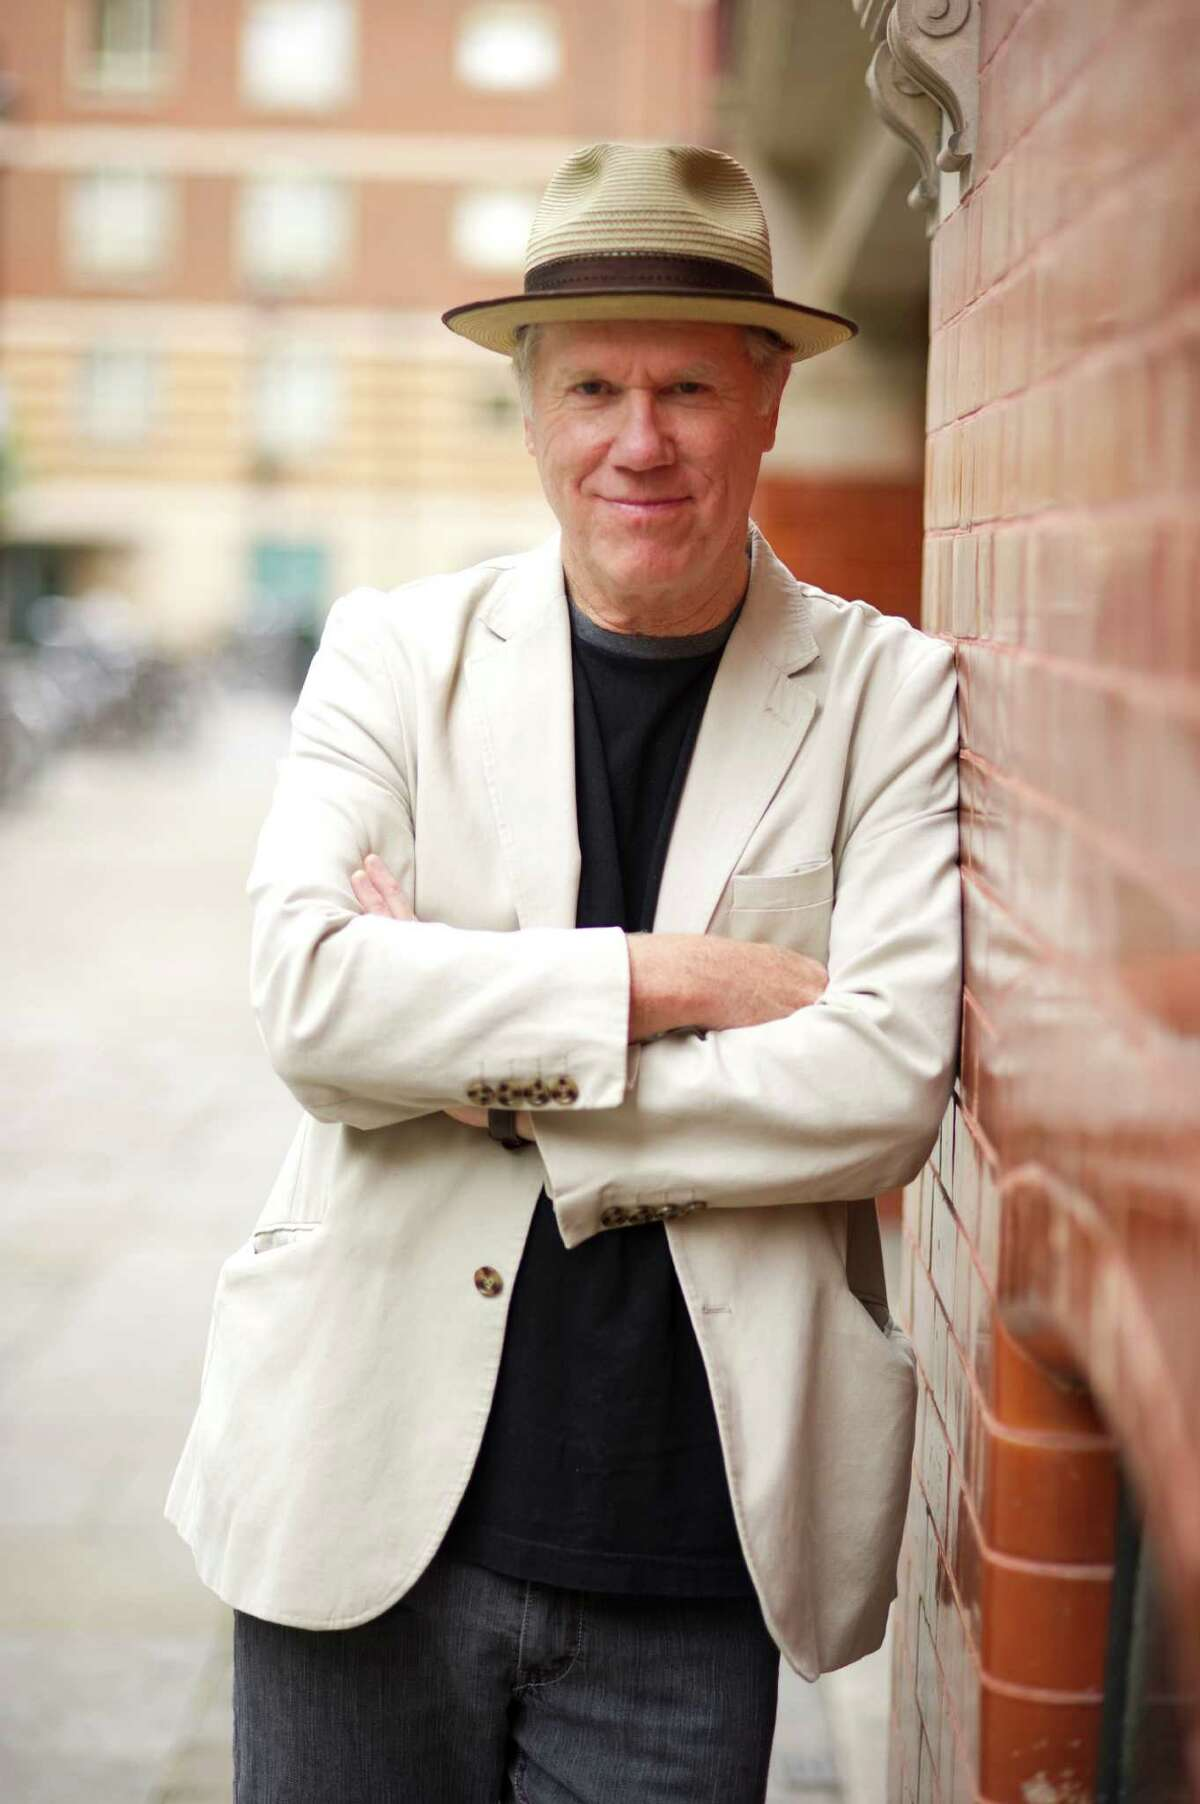 Loudon Wainwright III brings his eccentric sense of humor, oddly grimacing performance style and sometimes growling vocal delivery to The Egg at 8 p.m. Friday. Click here for information. (Ross Halfin)